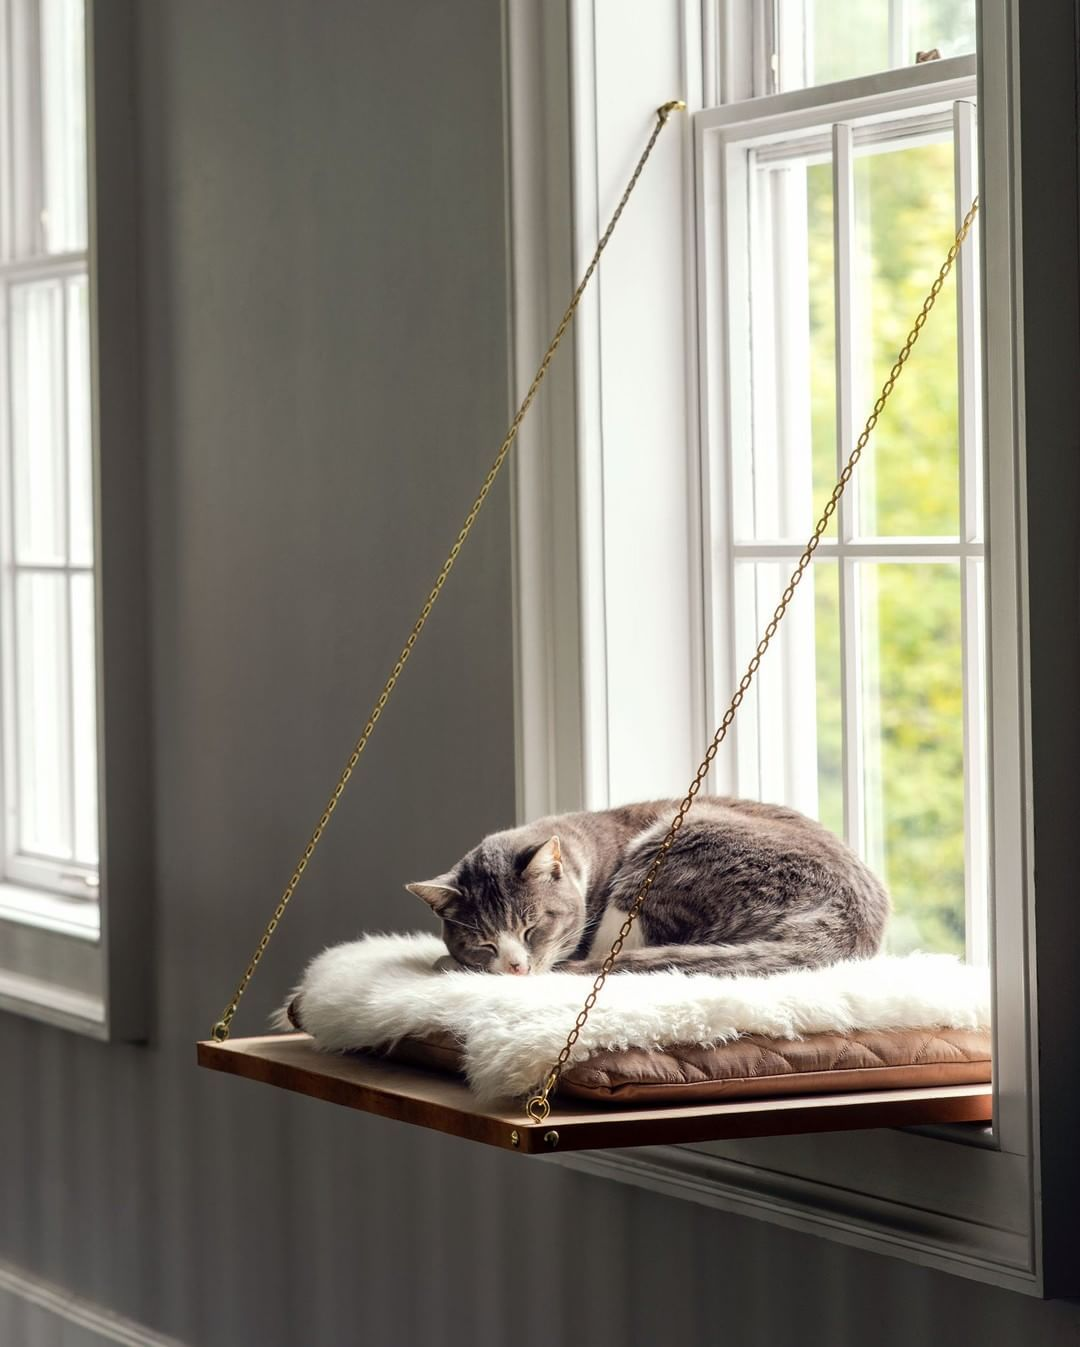 Mondays Give Your Feline The Purrfect Place To Perch With A Window Seat That Lets Her Scale New Heights Settle In Diy Cat Bed Cat Window Perch Cat Window